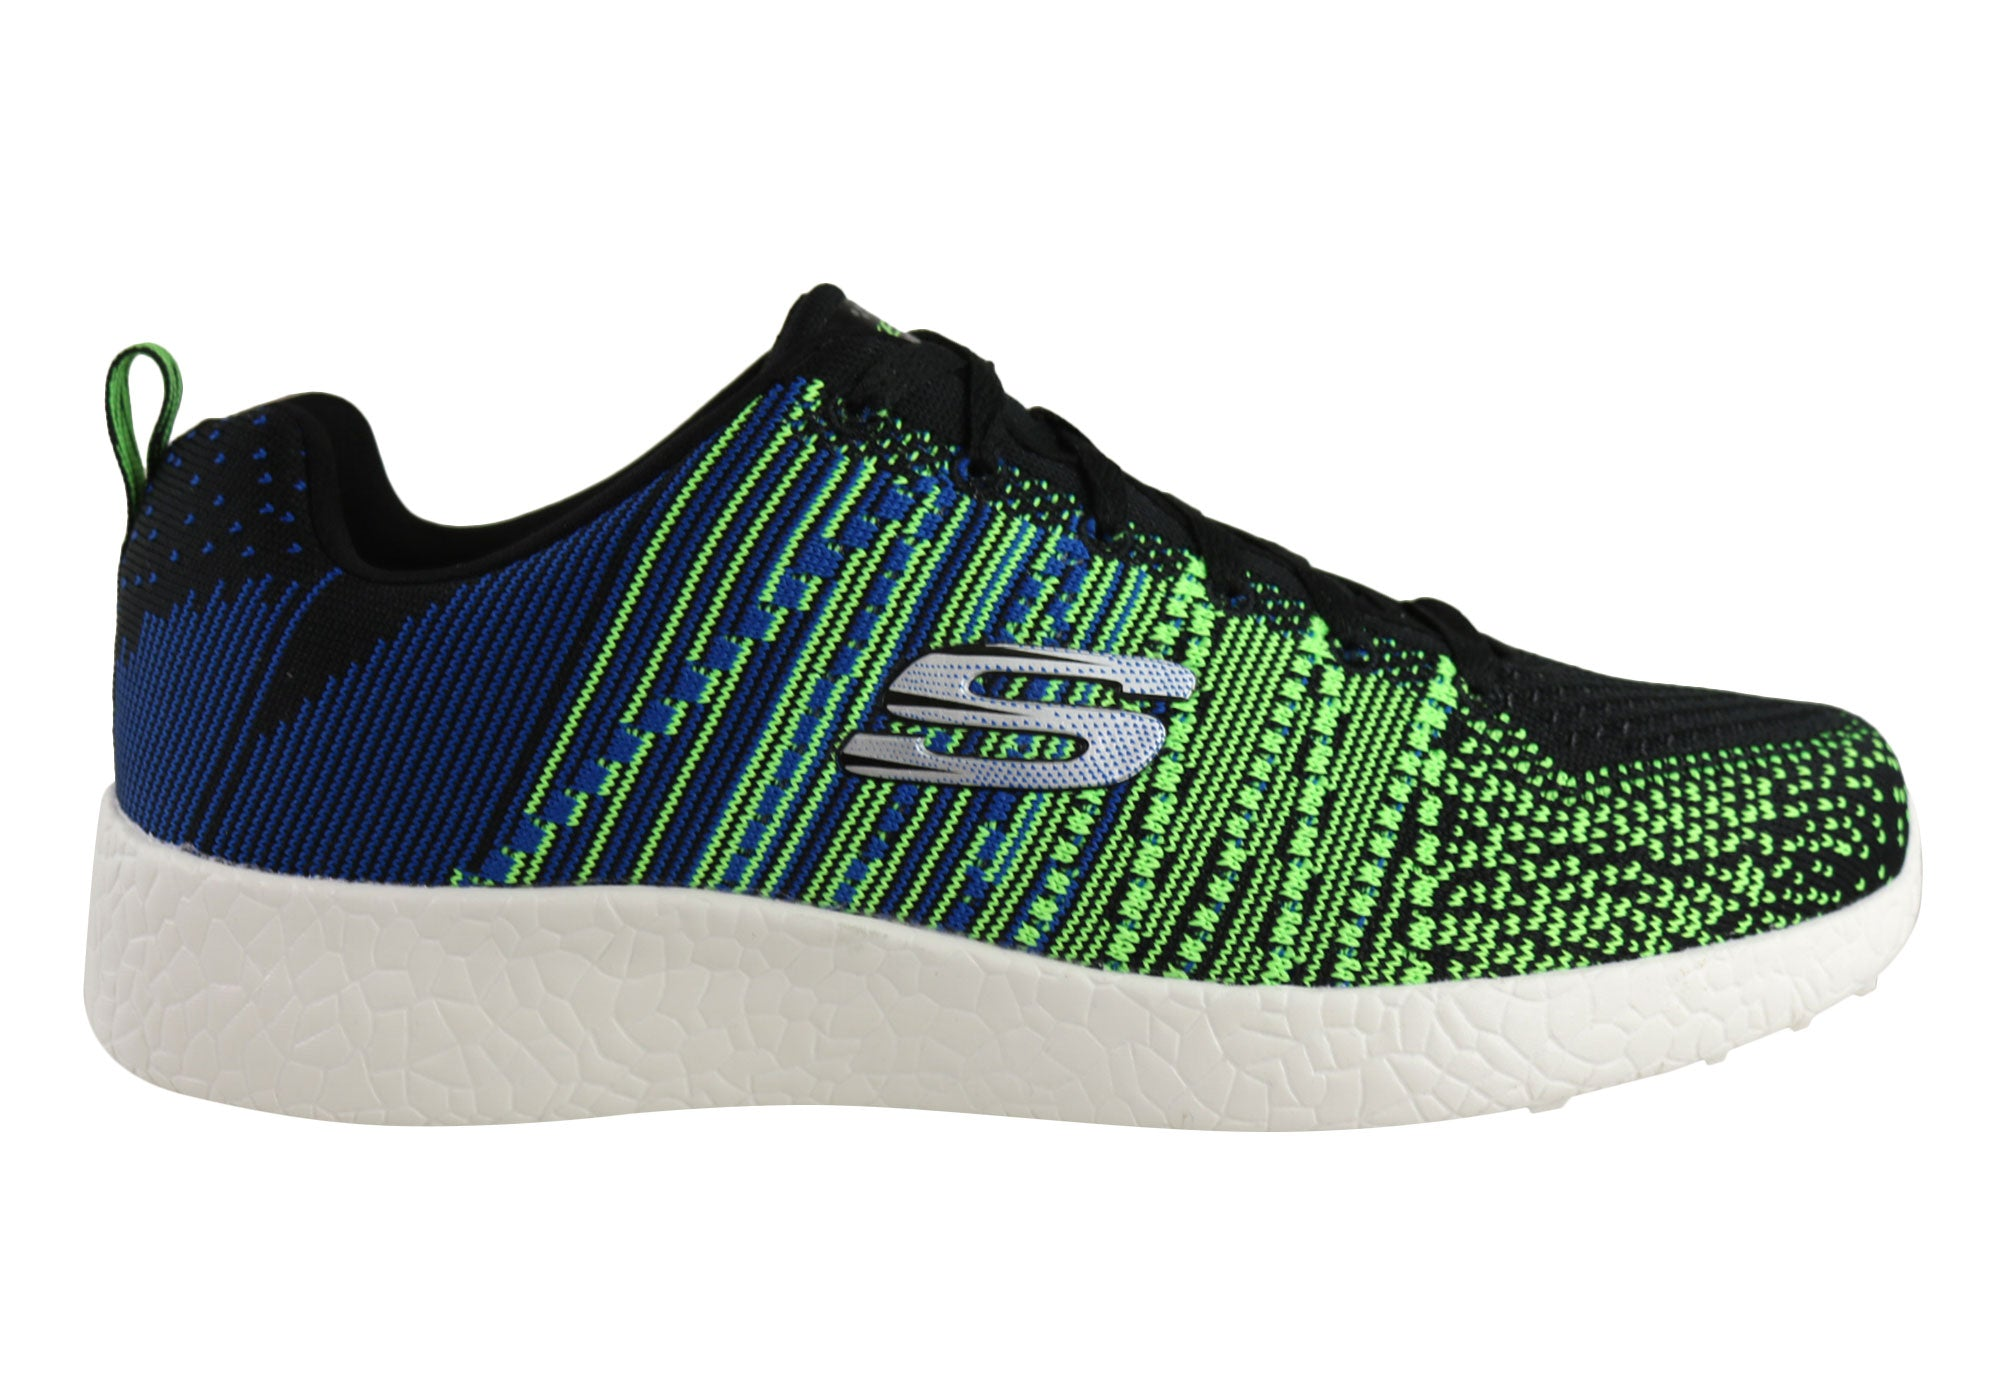 Buy Skechers Running & Walking Shoes Online Brand House Direct